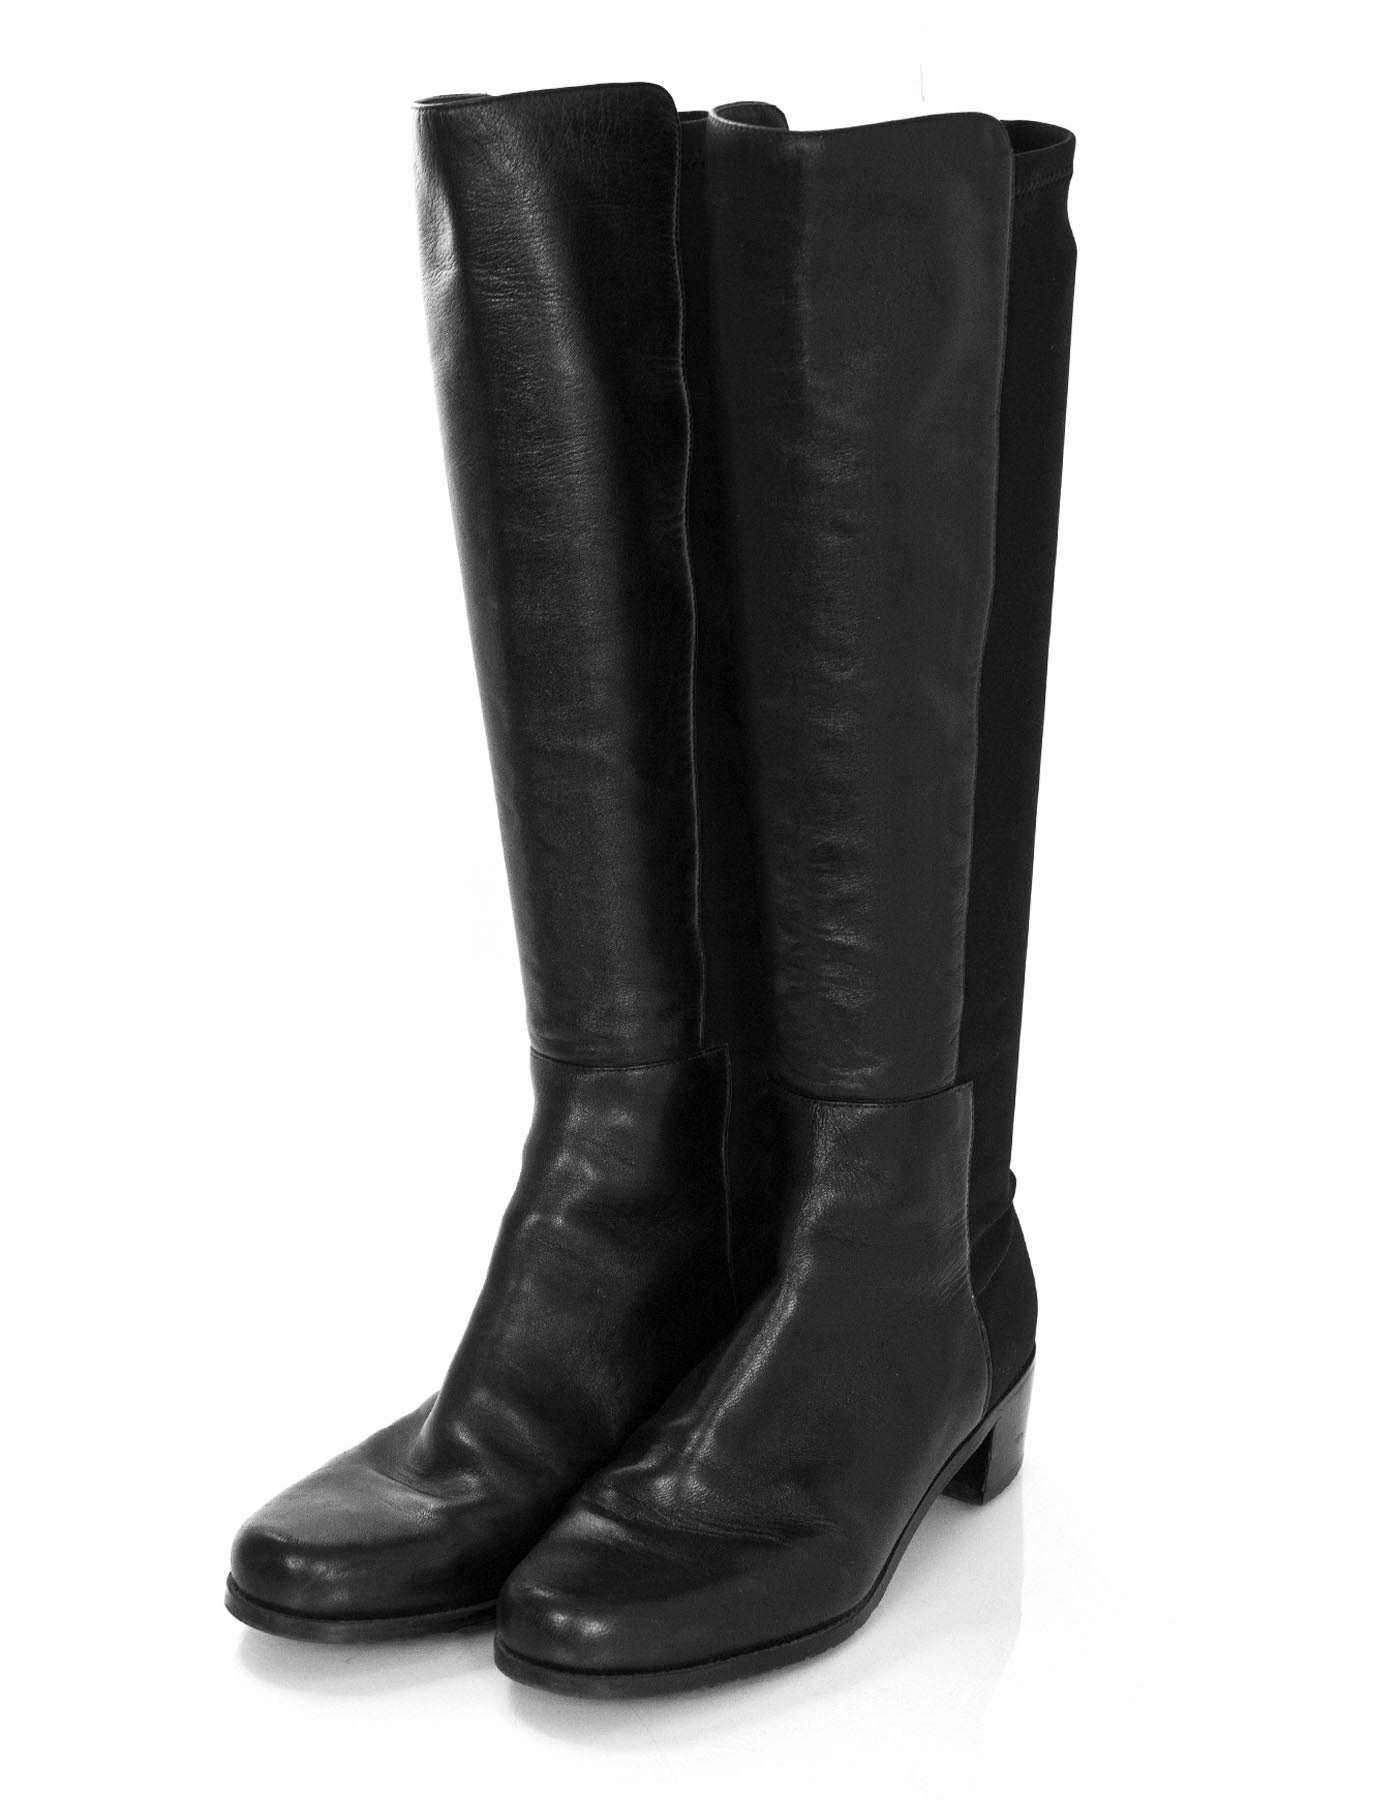 ff215698f4c Stuart Weitzman Black Leather 50 50 Knee-High Boots For Sale at 1stdibs